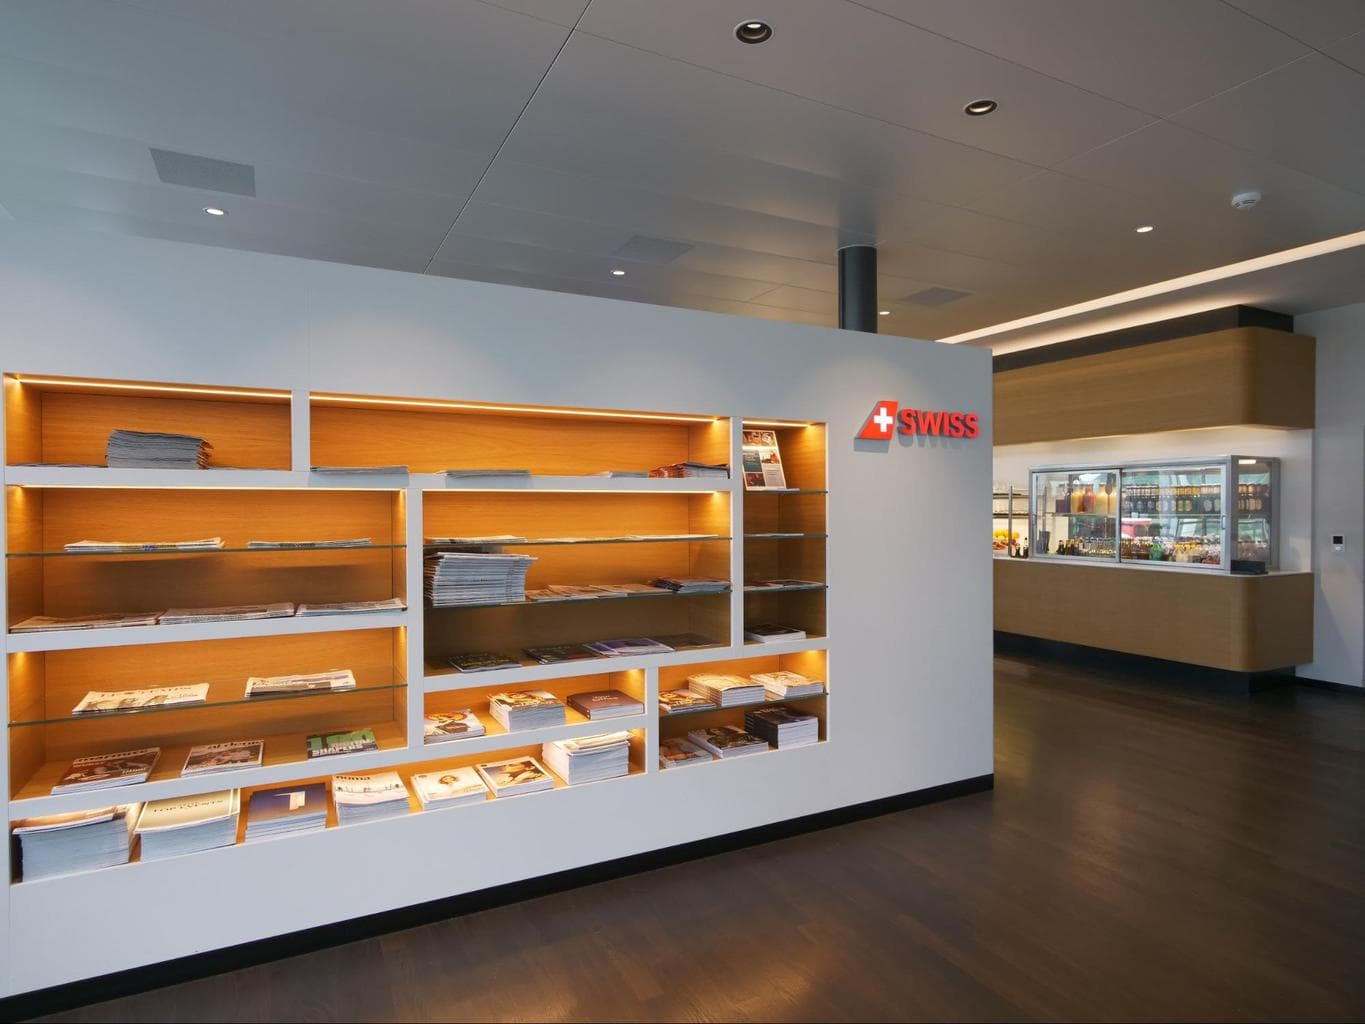 Entrance to Swiss Business Class lounge at Zurich airport